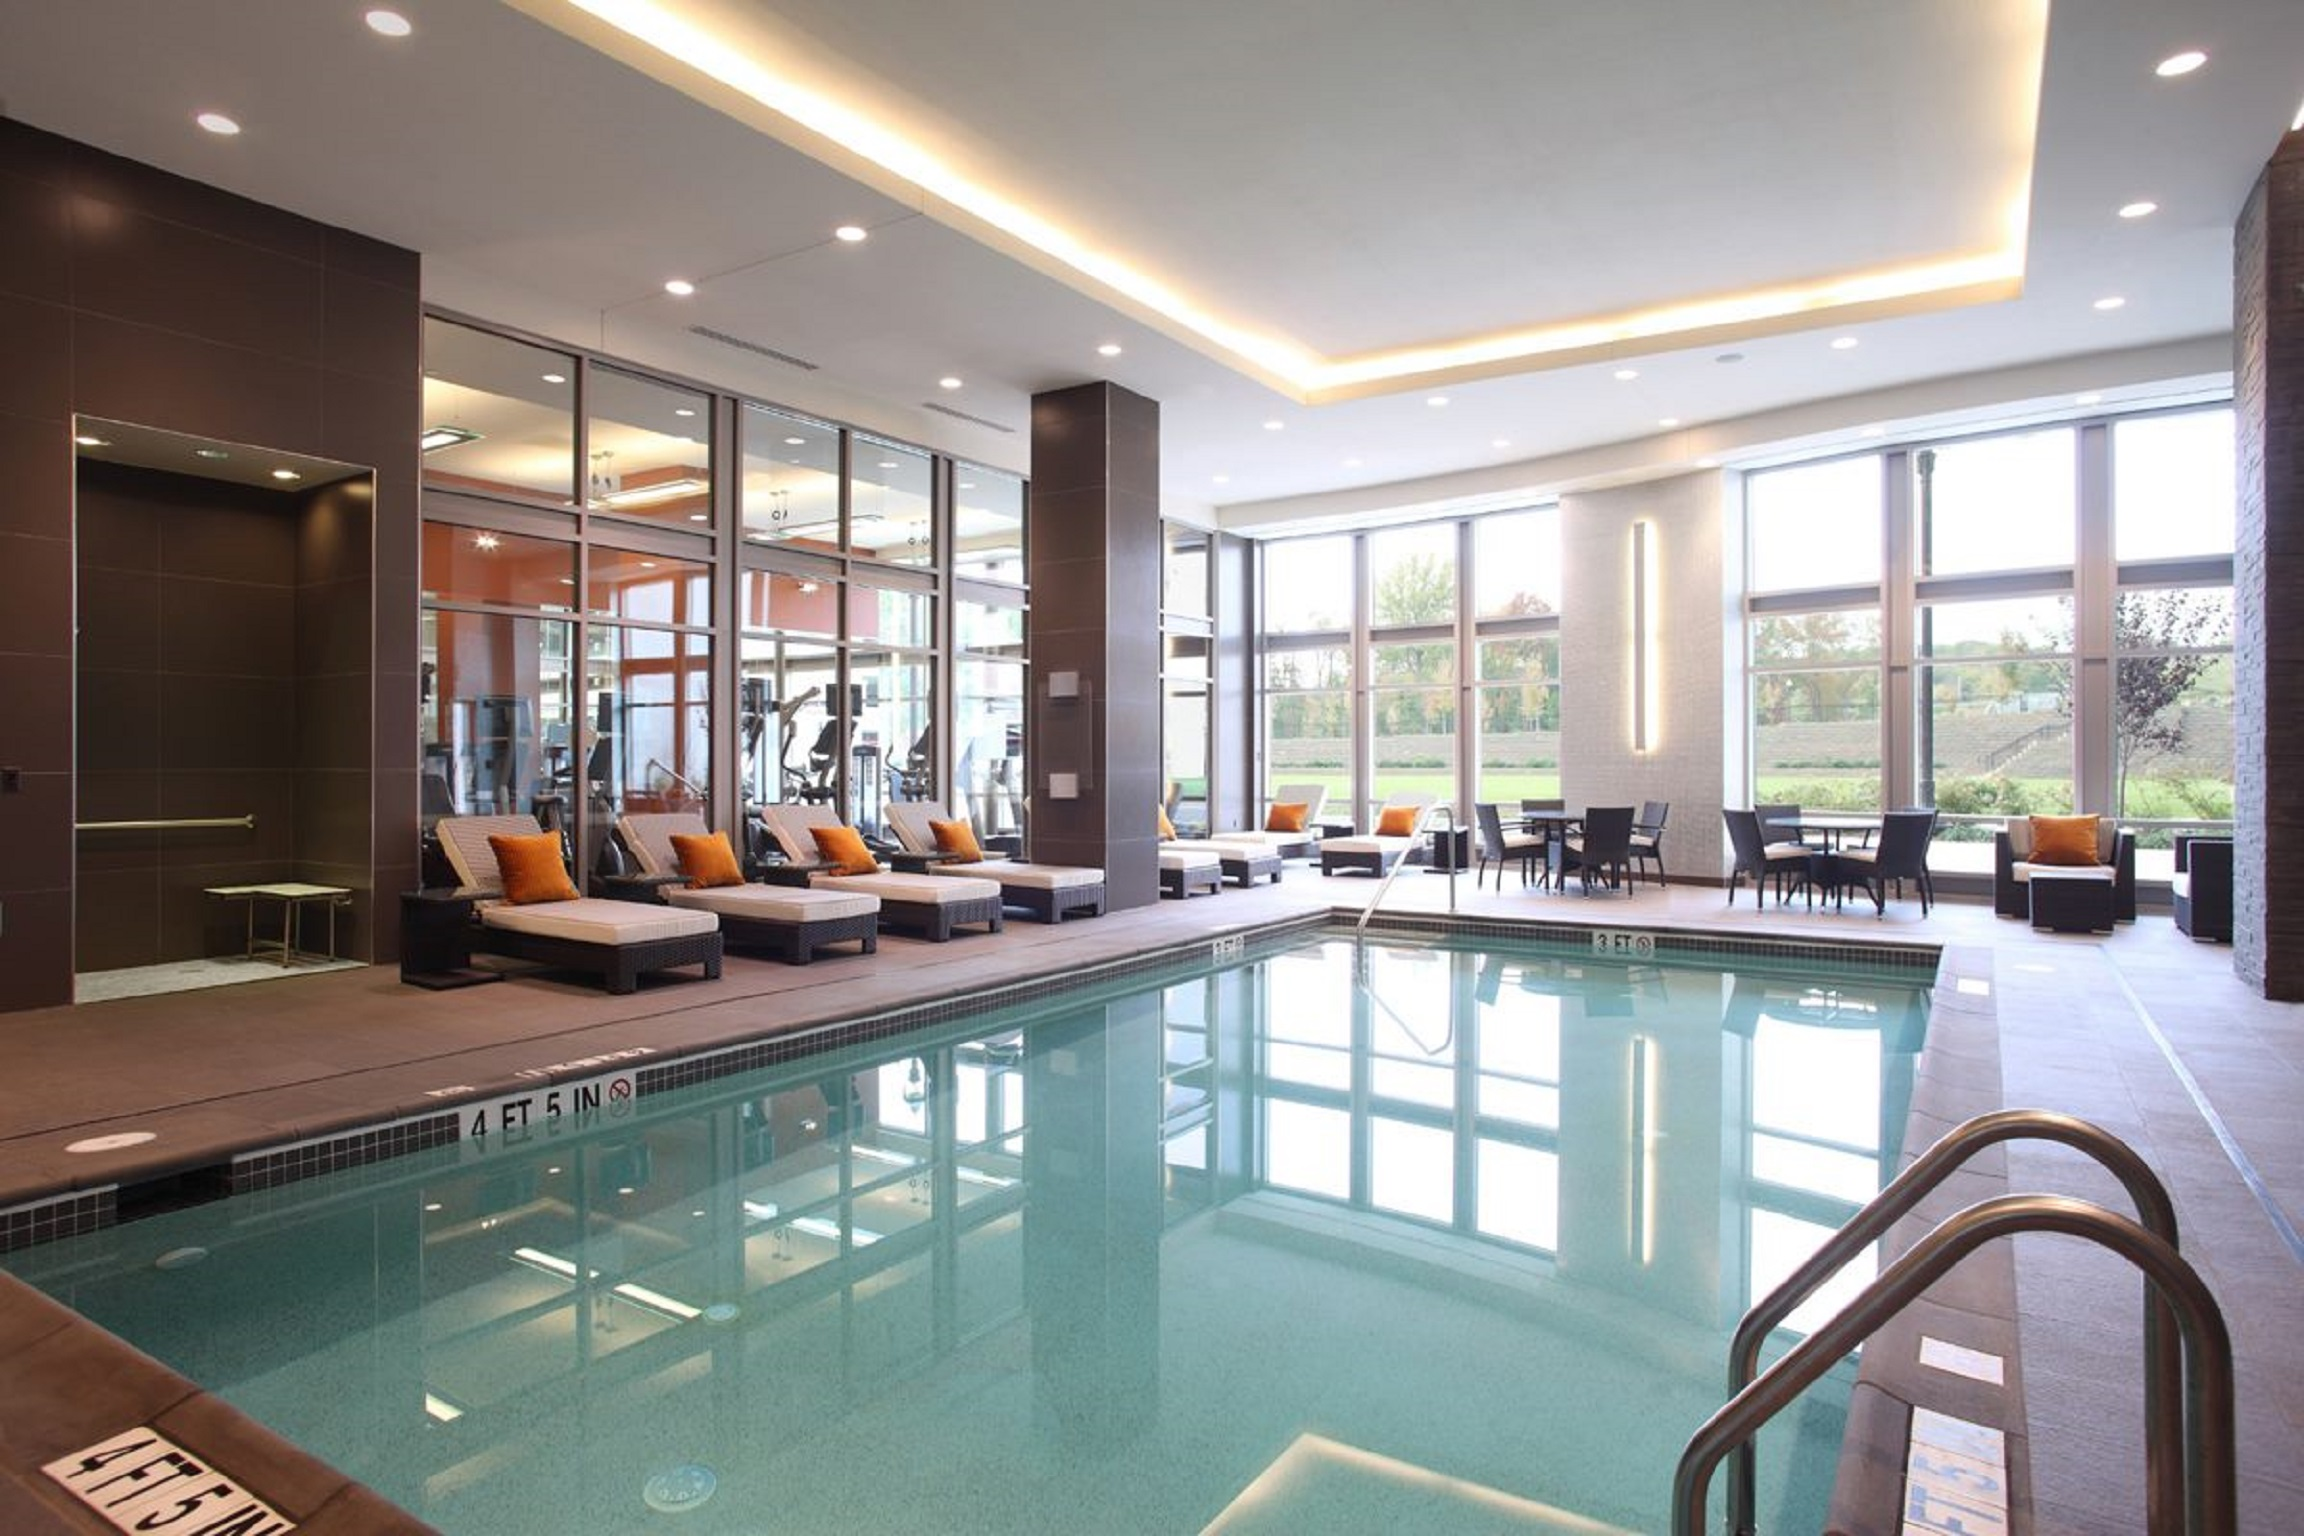 Hotel amenities in hanover md the hotel at arundel - Arundel hotels with swimming pool ...